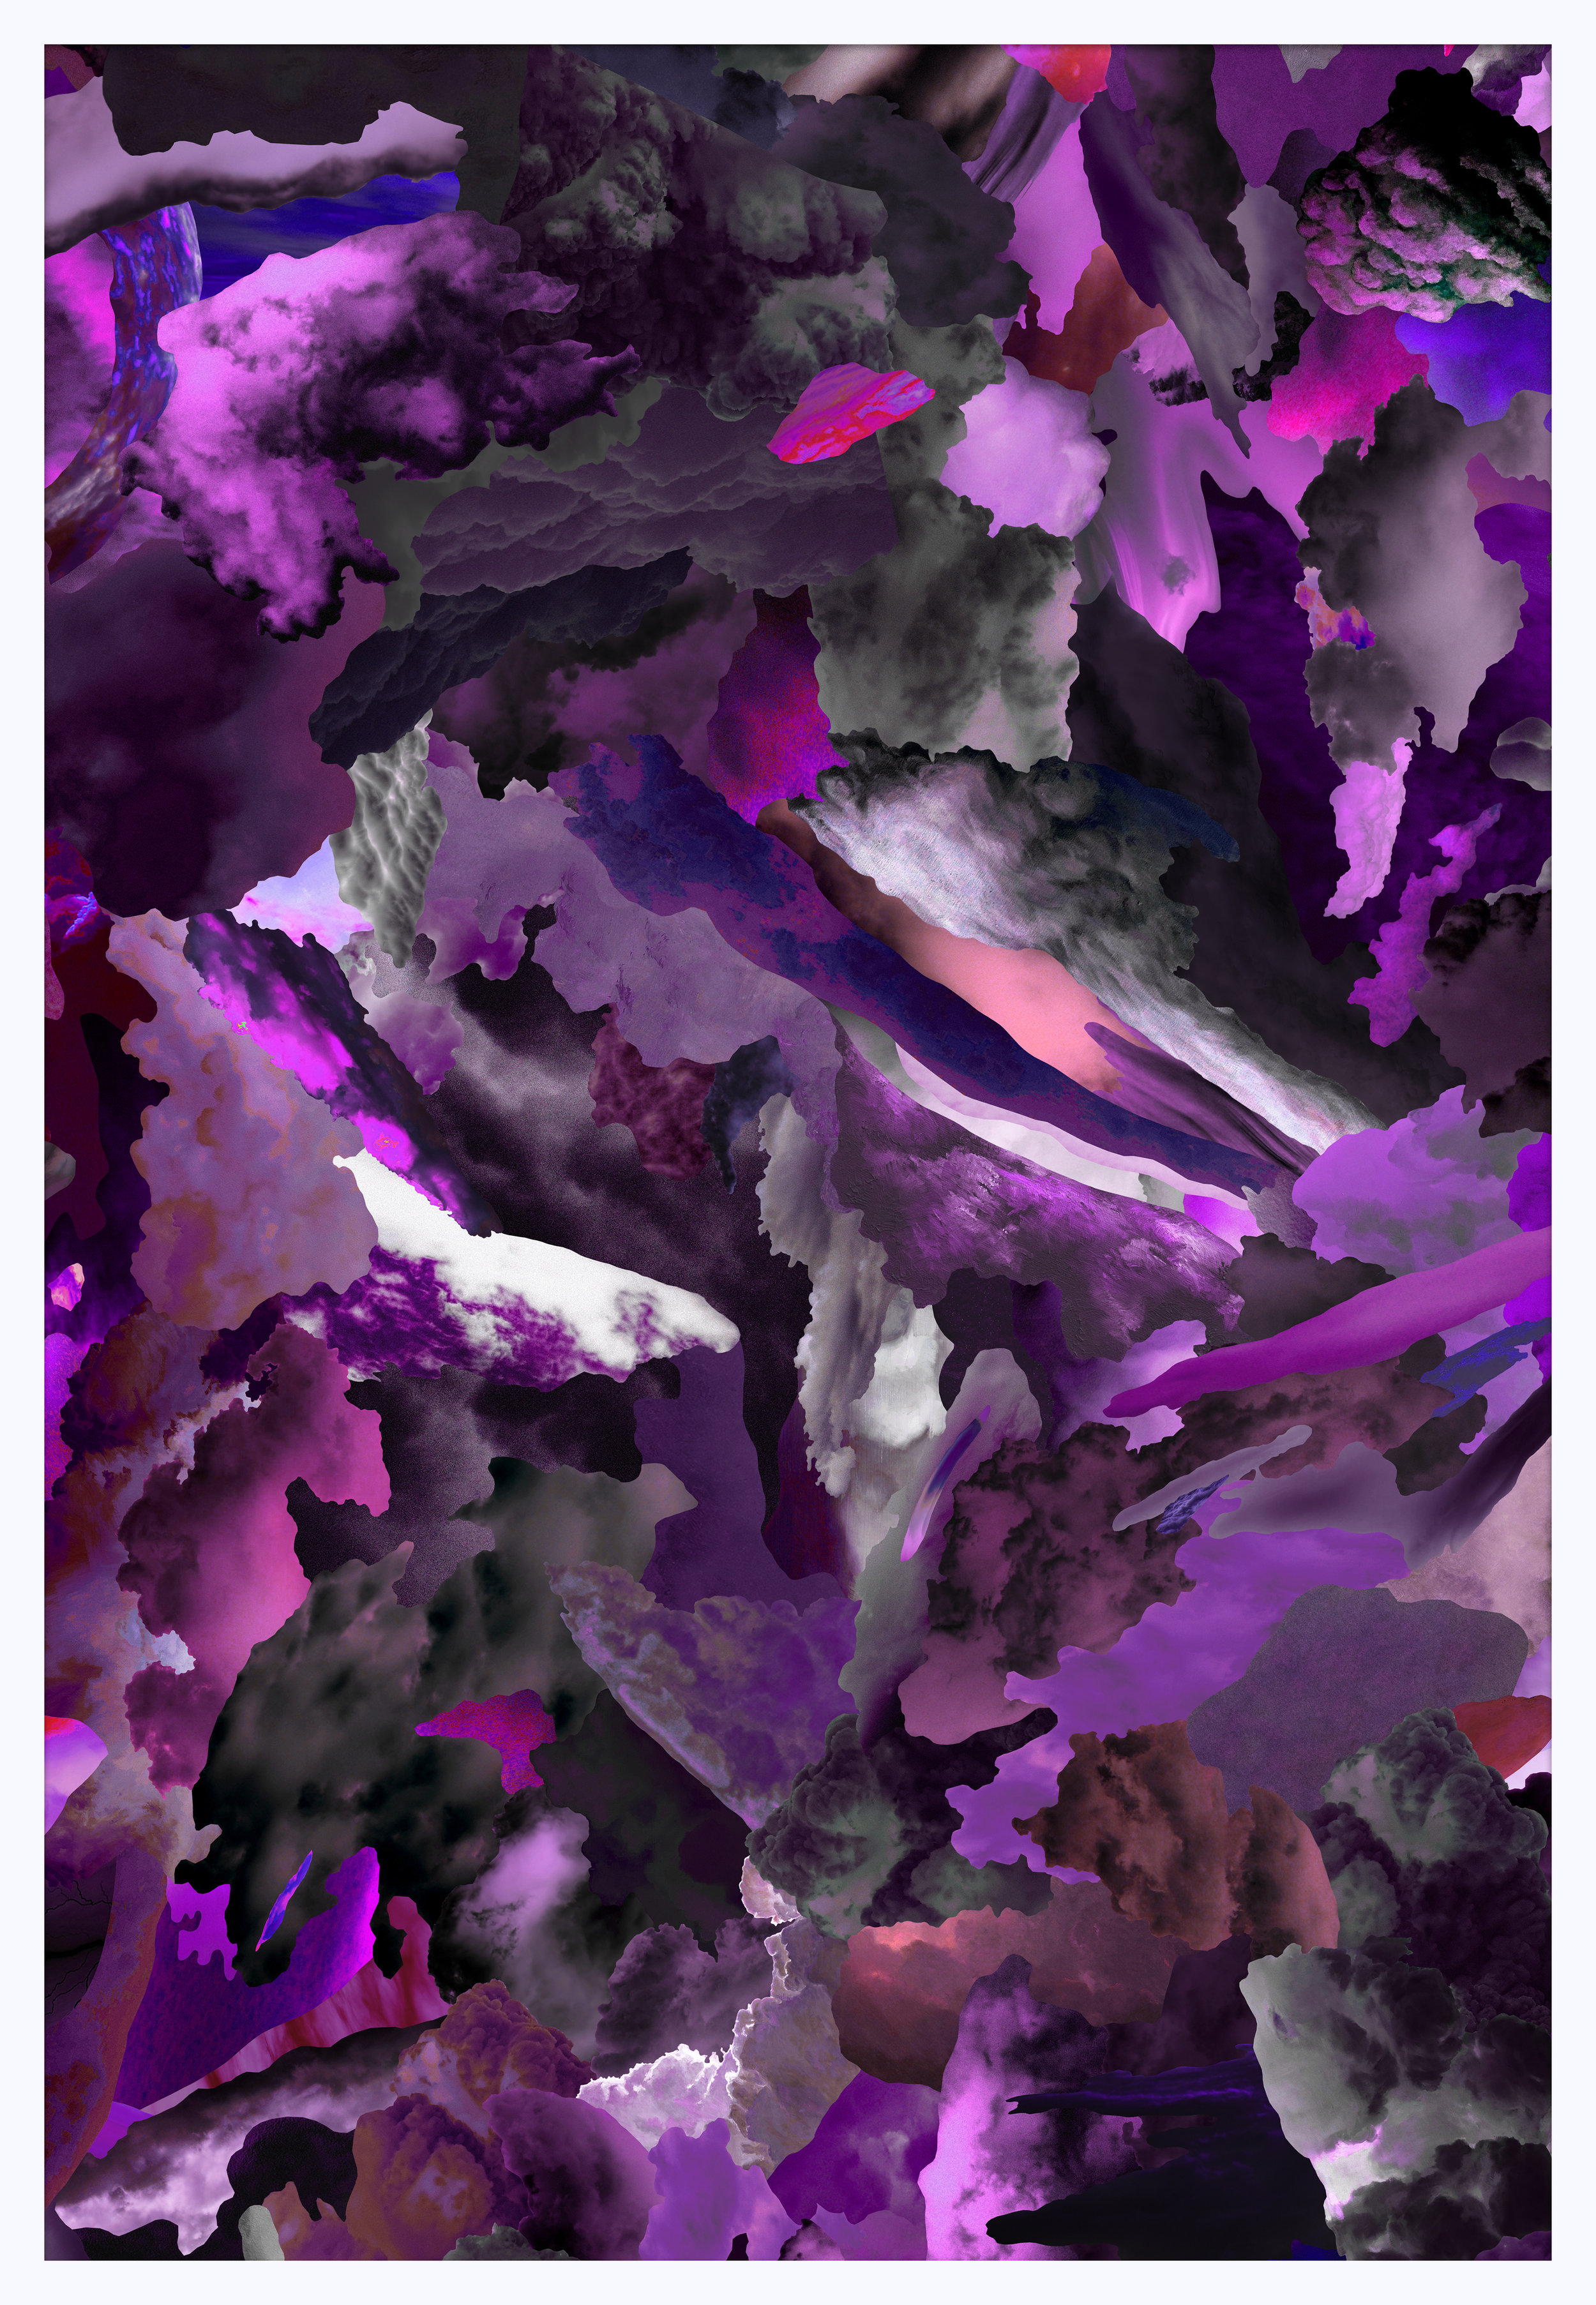 Case Simmons, Clouds W, Pigment Print, Digital Collage, Digital Art, Photoshop Collage, Contemporary Collage, M+B Gallery, Los Angeles